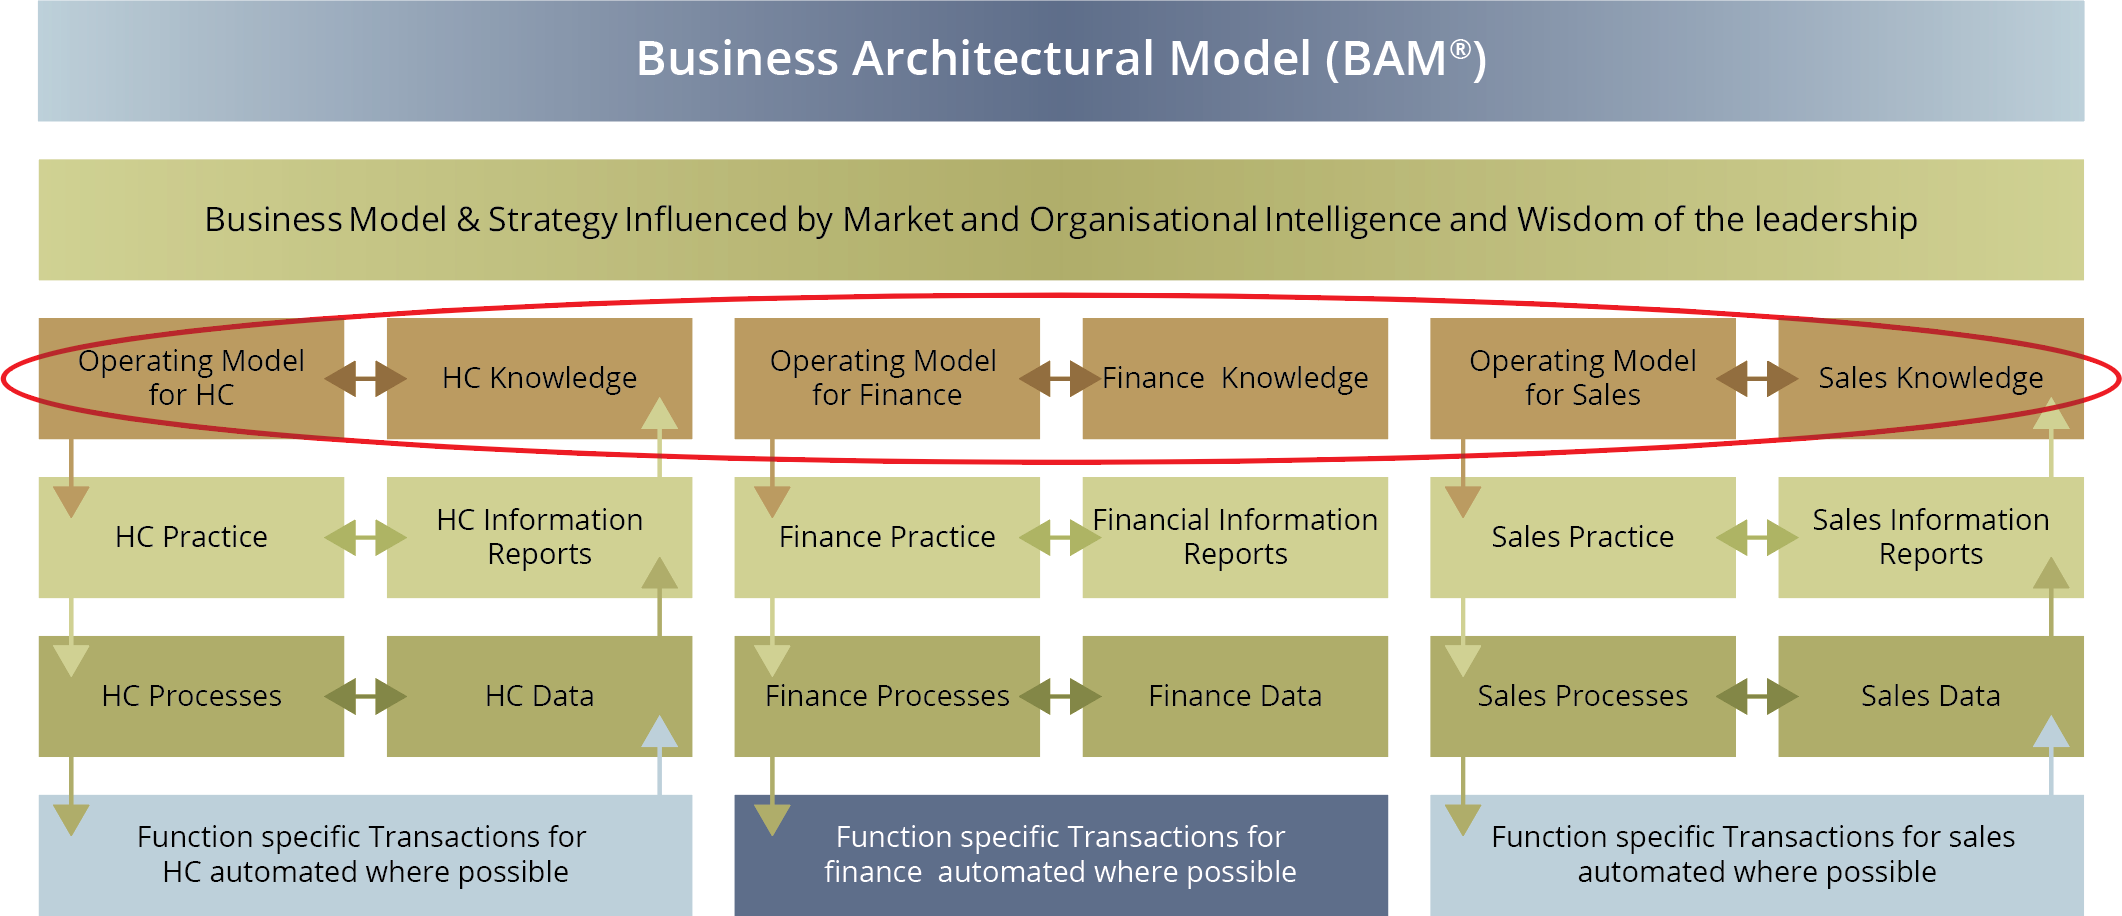 Business Architecture Model